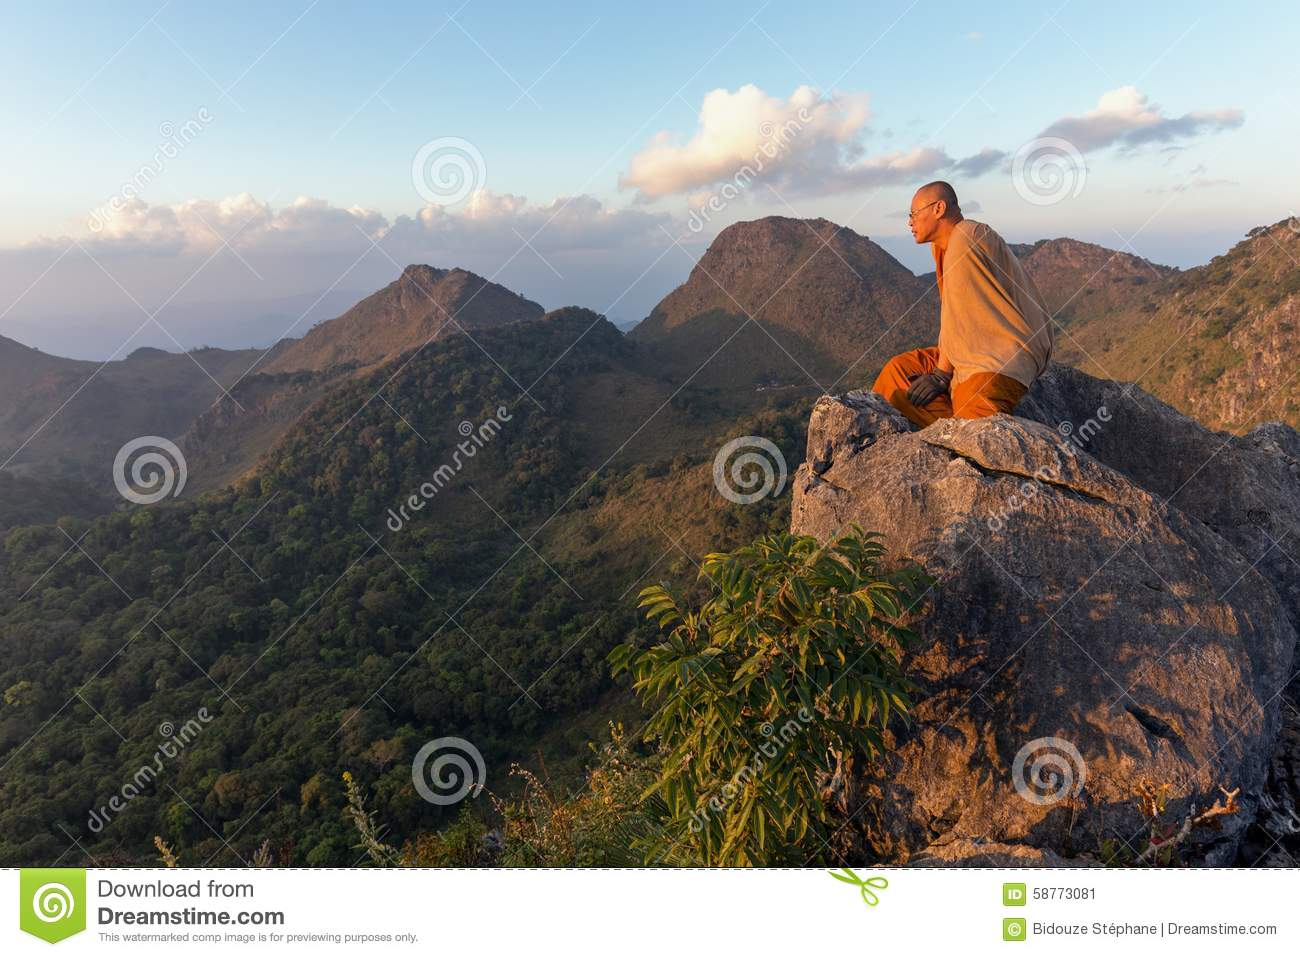 buddhist singles in mount calm Dharmamatch, a dating/matchmaking site for spiritual singles browse in-depth  photo profiles/personals meet local singles who share your beliefs & values.